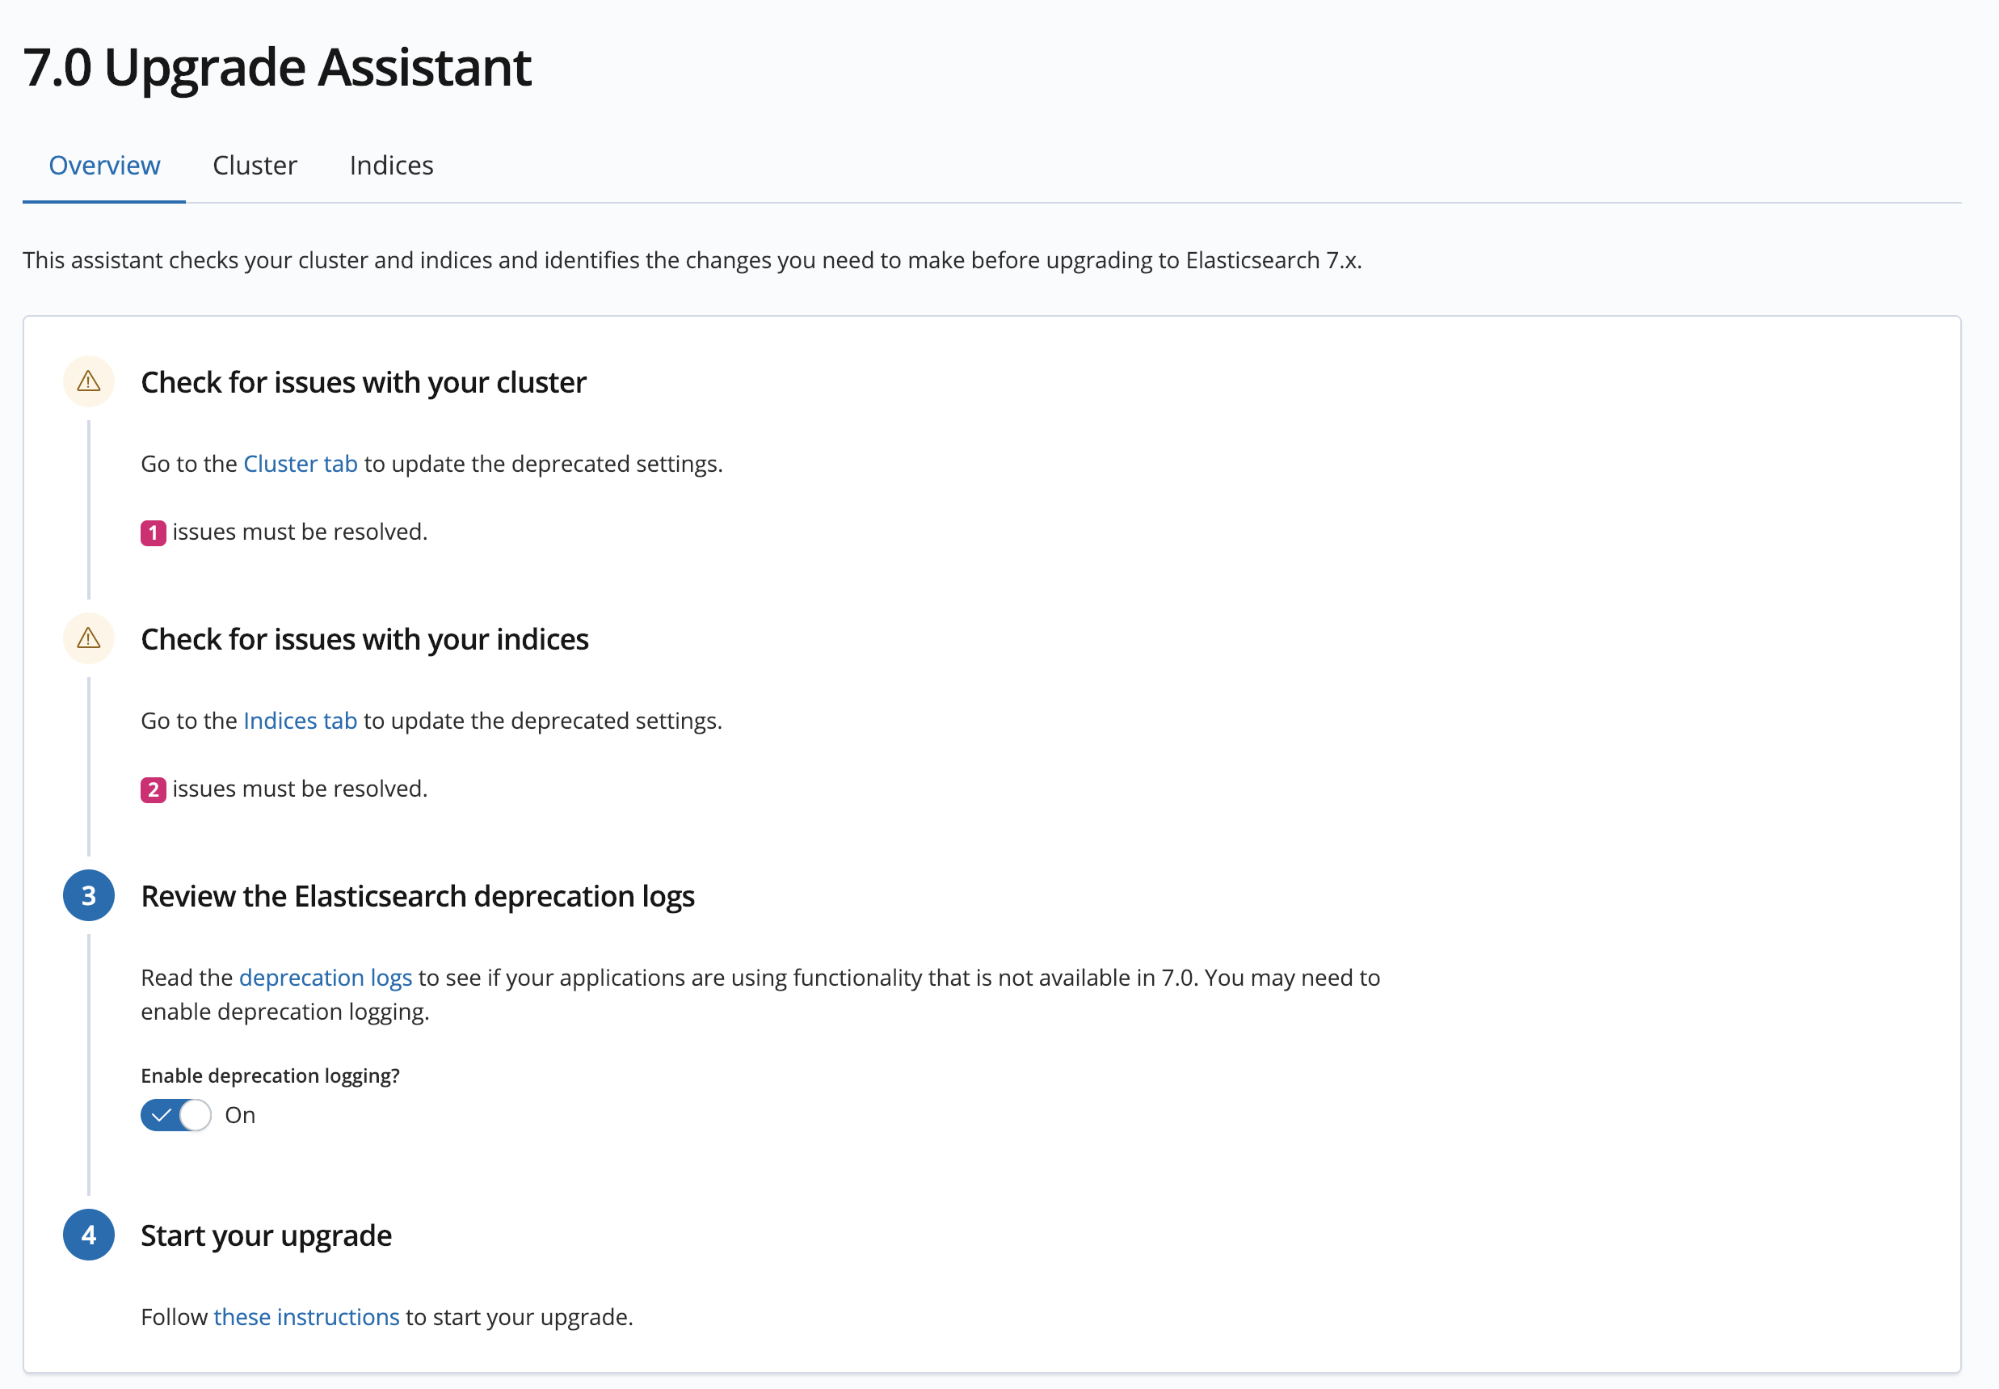 Upgrade Assistant overview screen